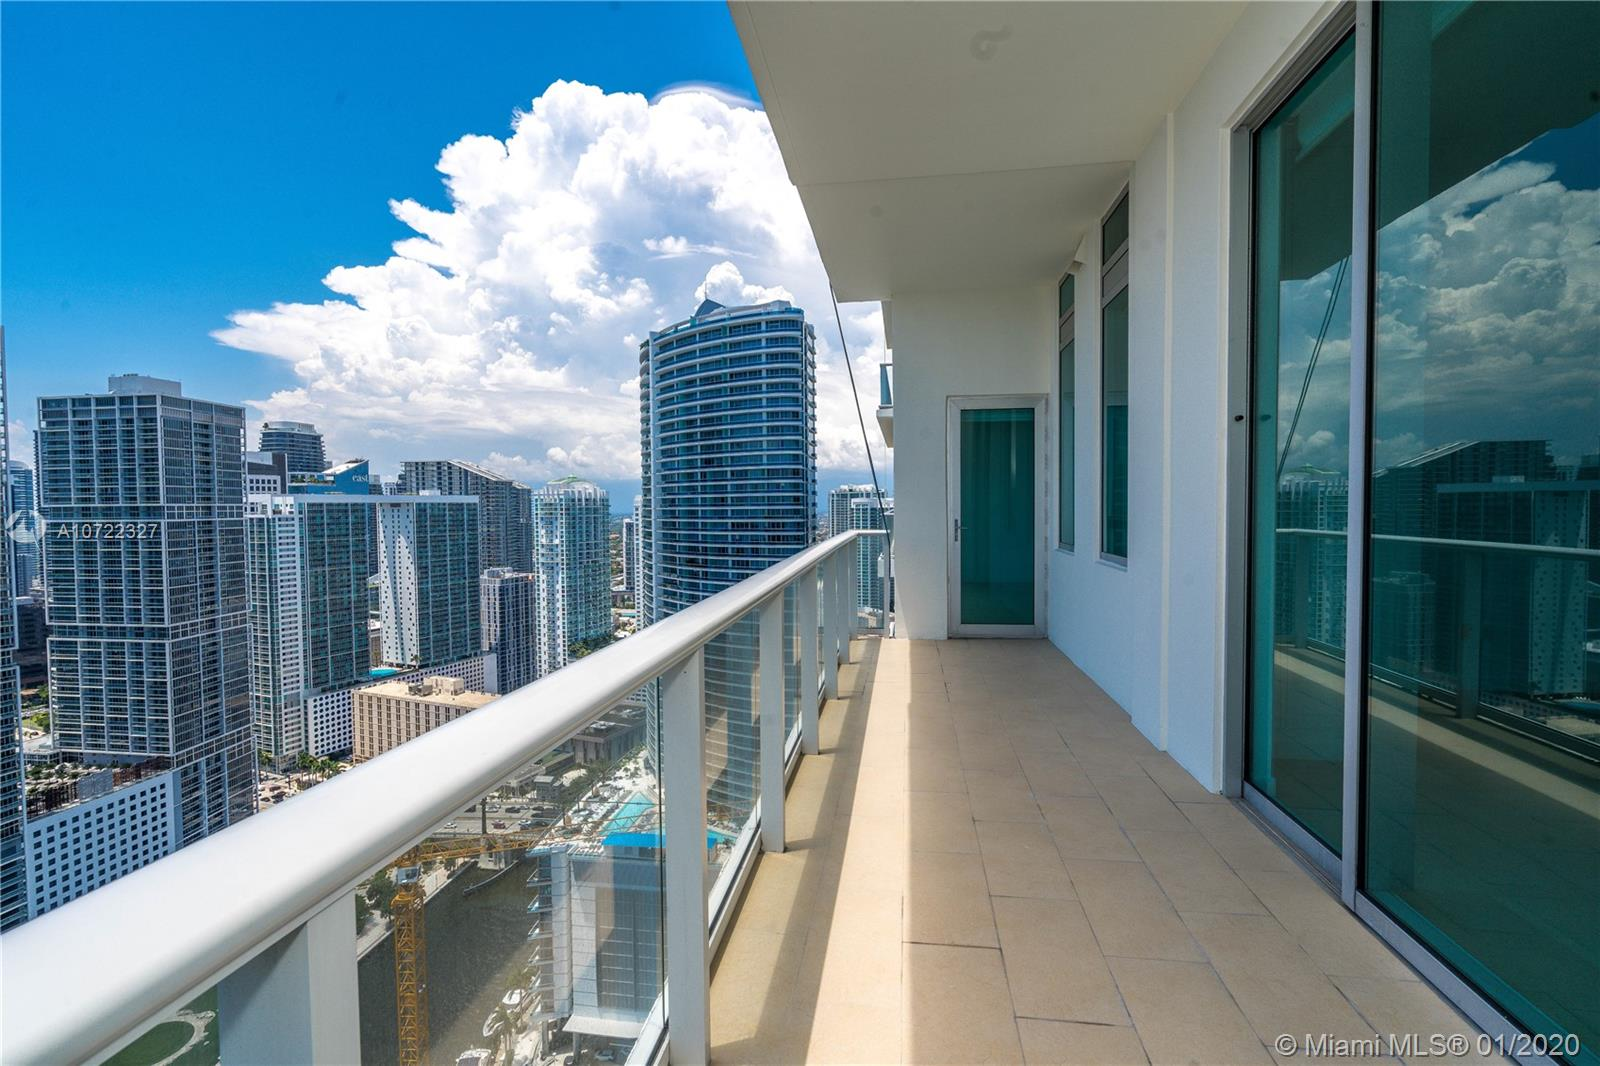 300 Biscayne blvd-PH 3802 miami-fl-33131-a10722327-Pic30